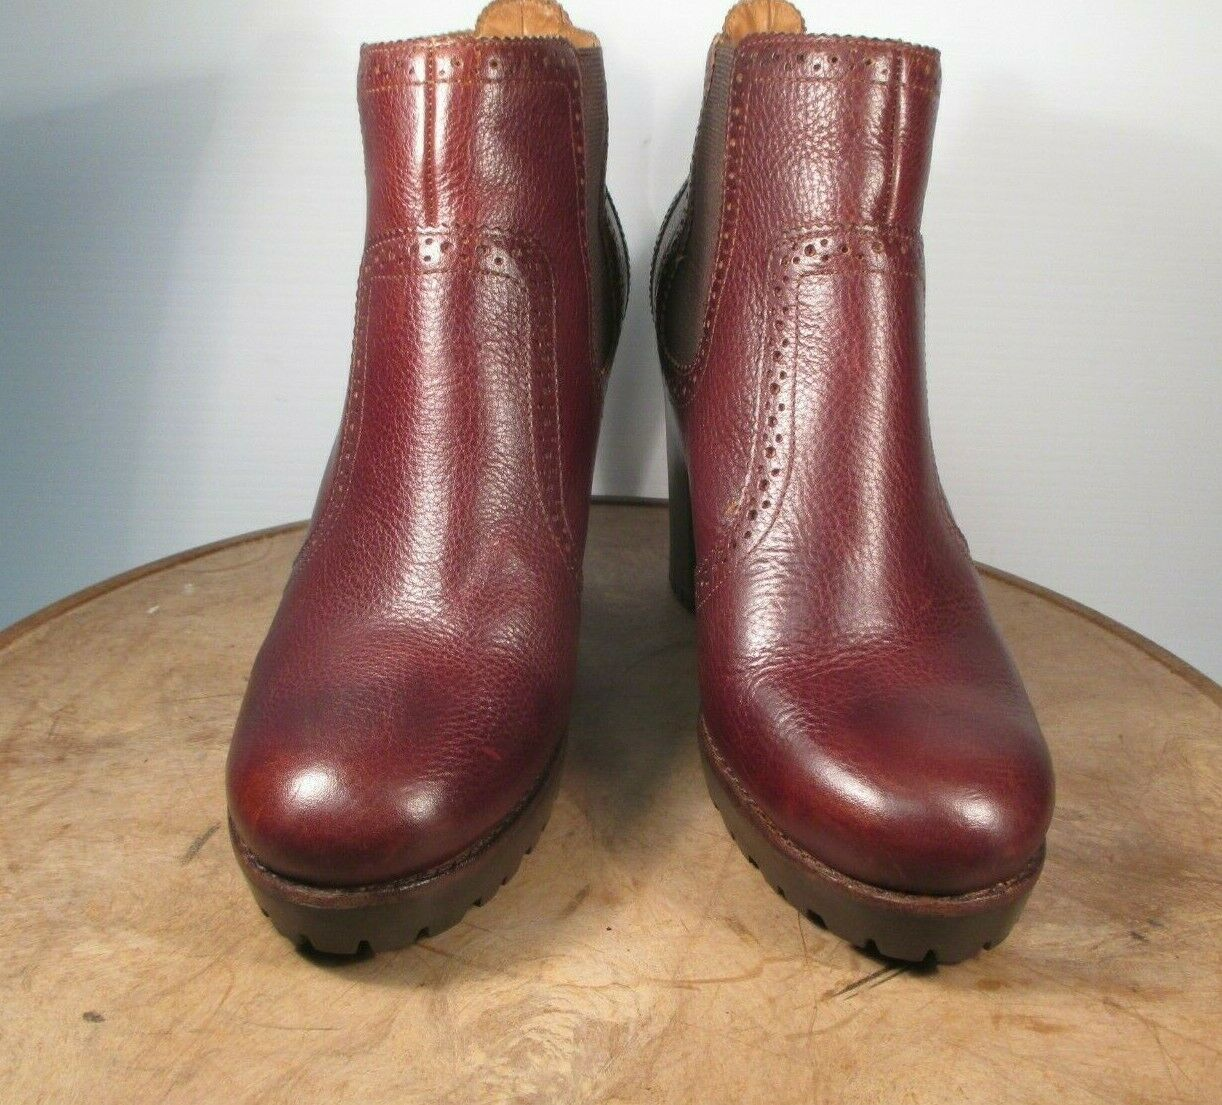 Sperry Top-Sider  Claremont Chelsea  Brown Leather Ankle Boot Lug Heel Size 9 M